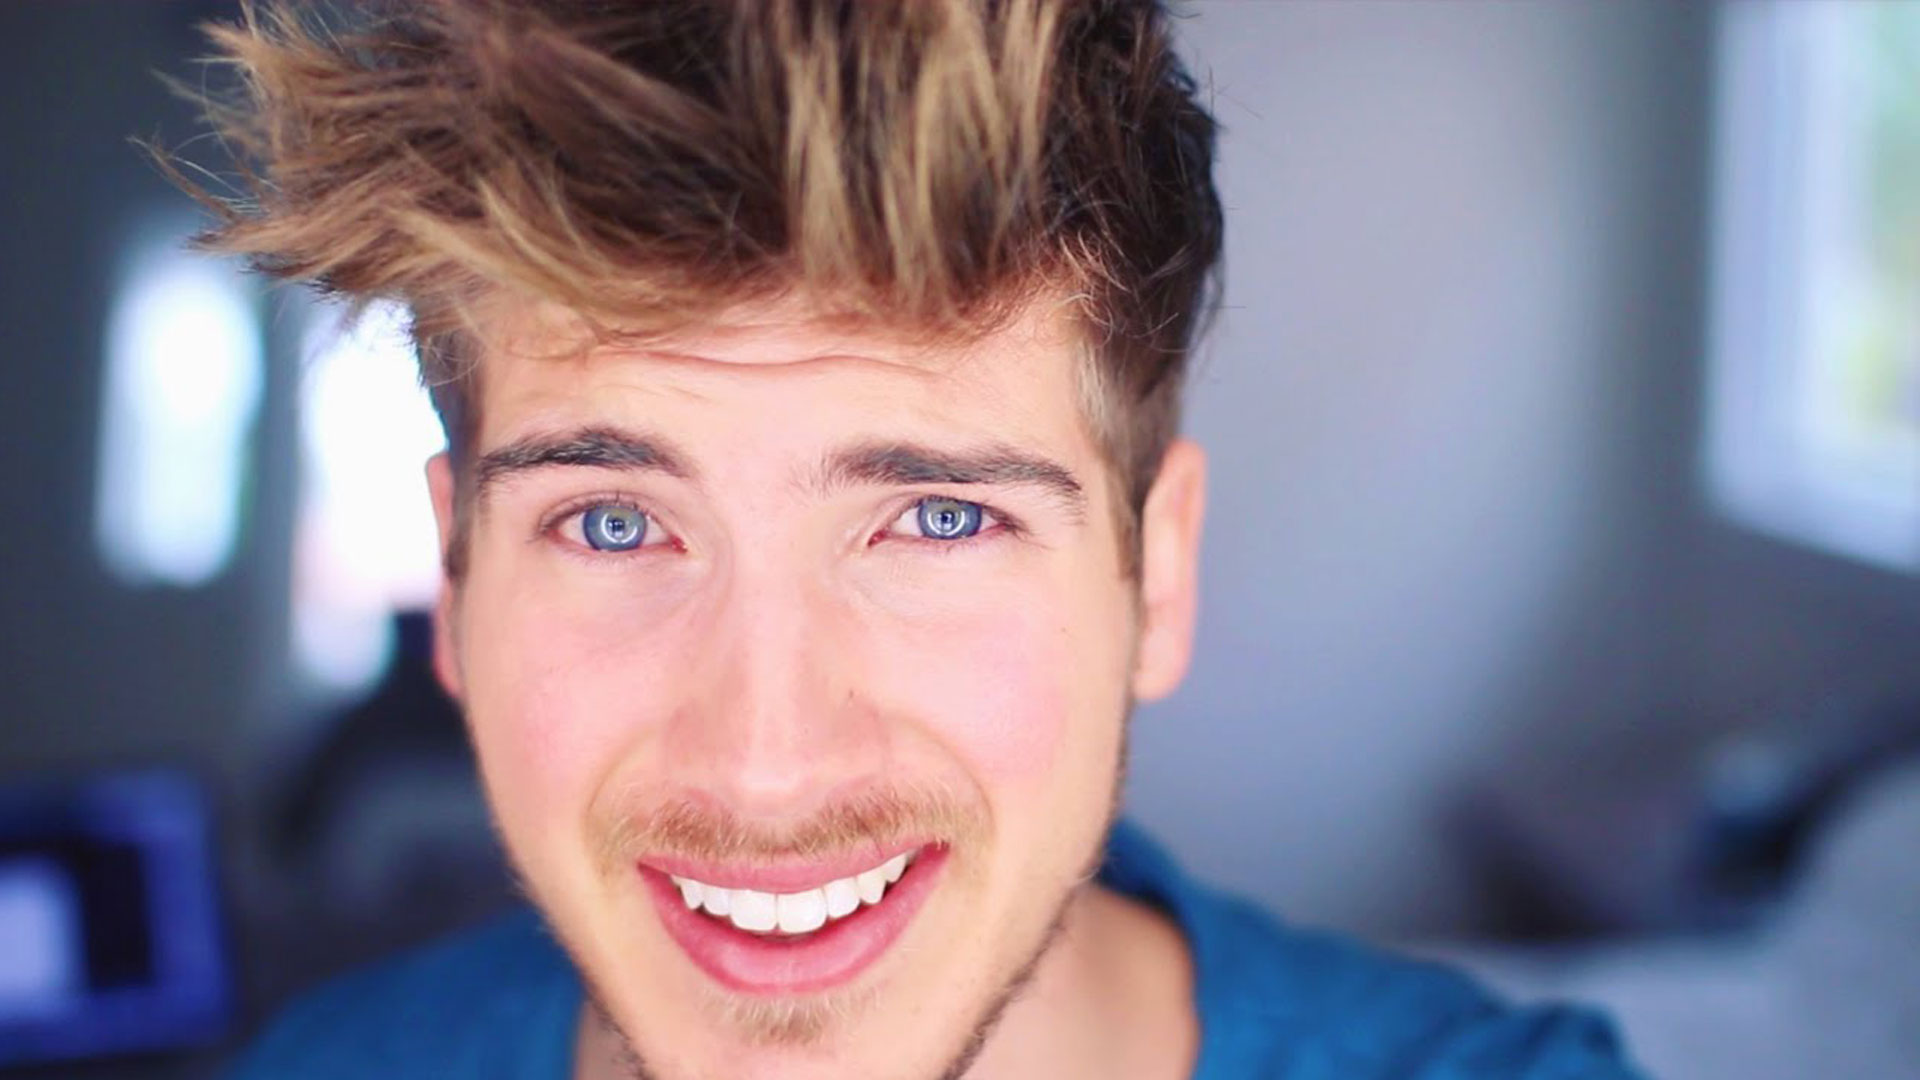 Facts you may not know about Joey Graceffa